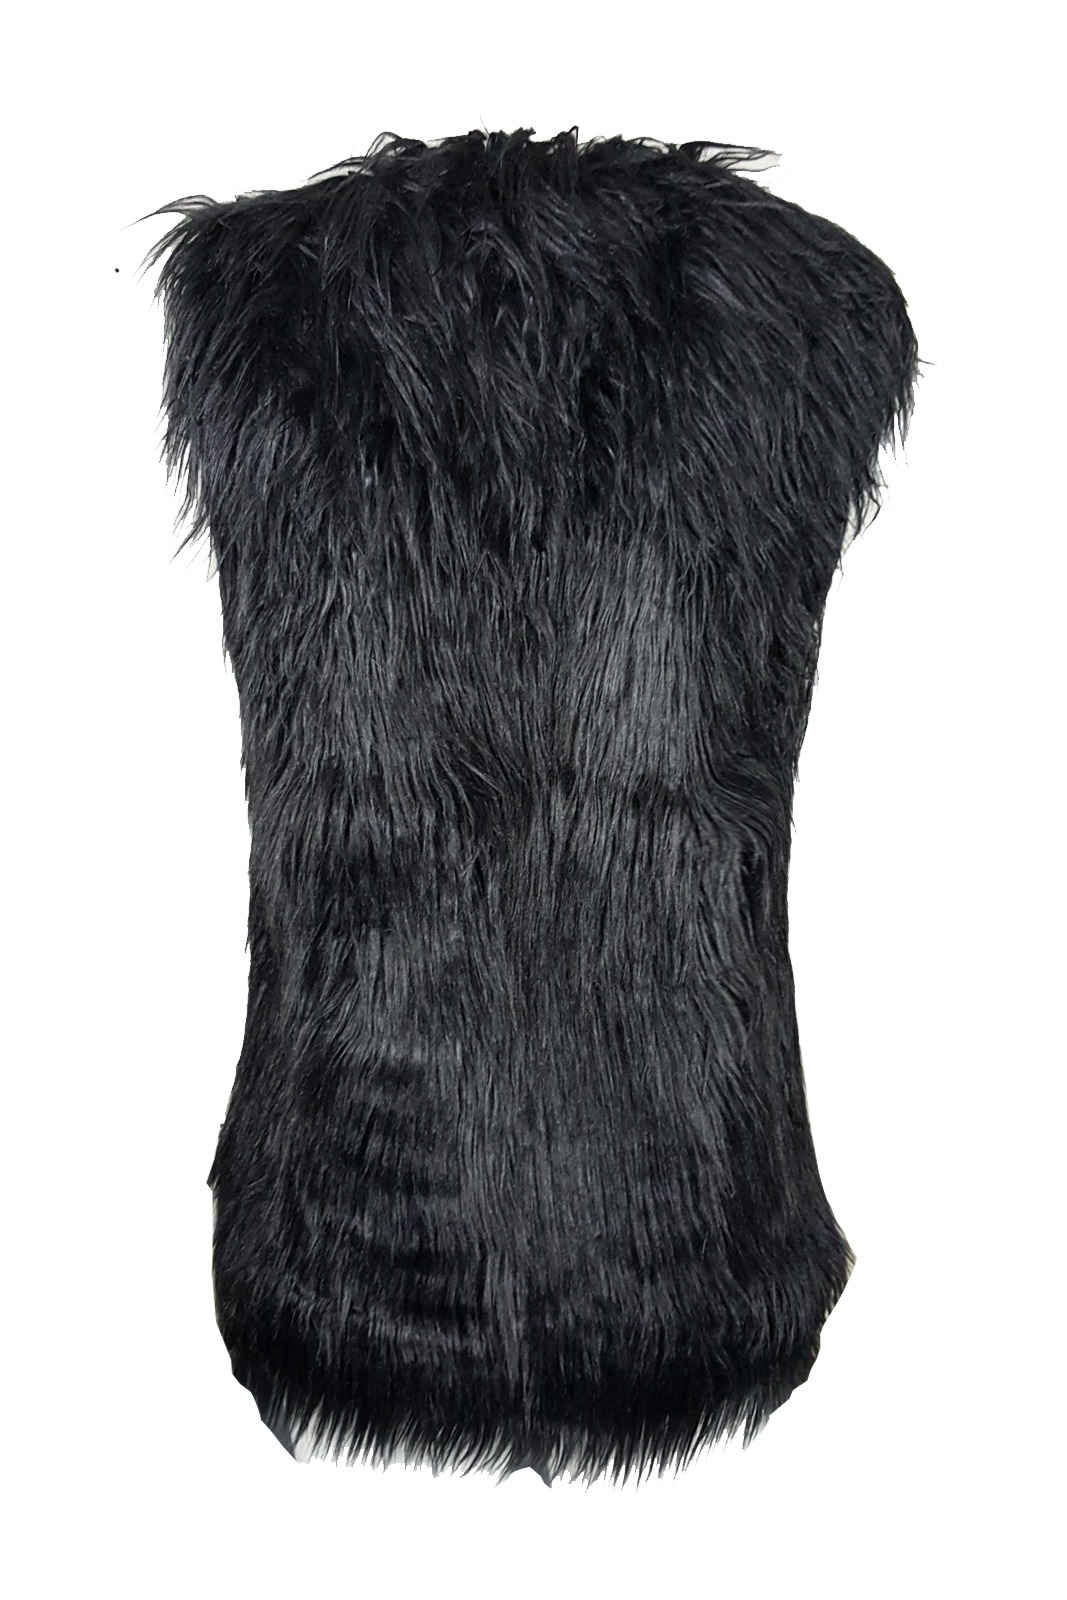 Black faux fur gilet Save. Was £ Now £ Maine New England Blue jersey gilet Save. Was £ Then £ Now £ > Mantaray Navy padded gilet Save. Was £ Now £ Regatta Black 'Icebound' quilted bodywarmer Save. Was £ Now £ Maine New England.